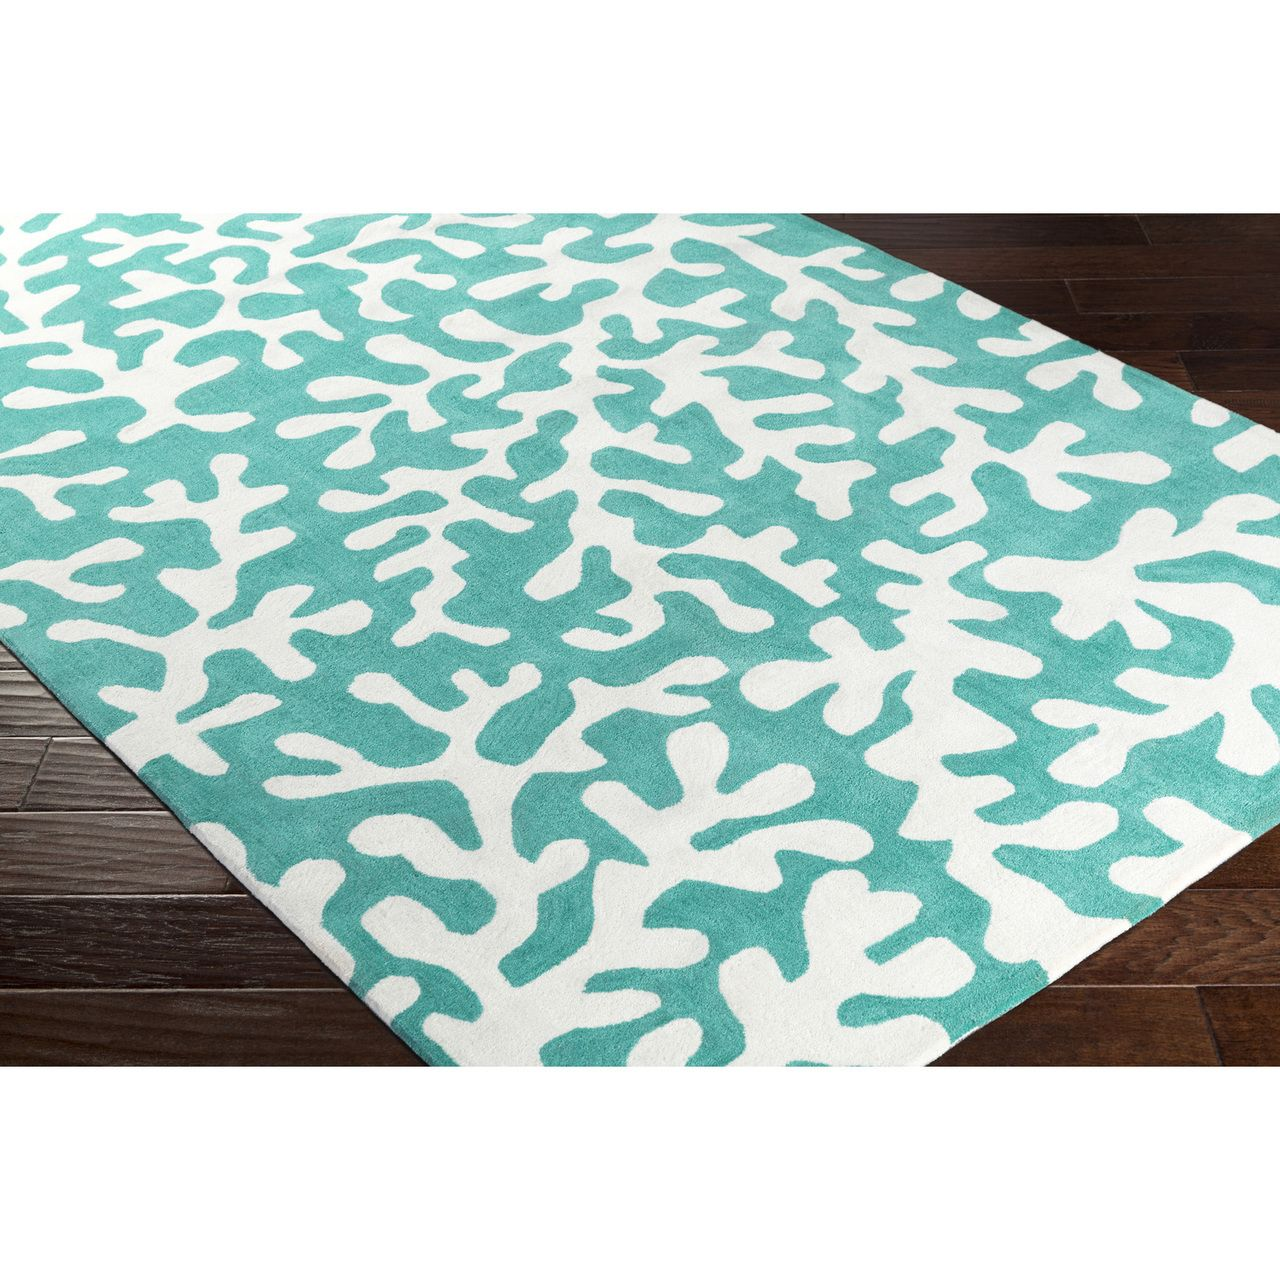 A Perennial Favorite Color Shade For Beach Homes This Teal Background Plush Area Rug With